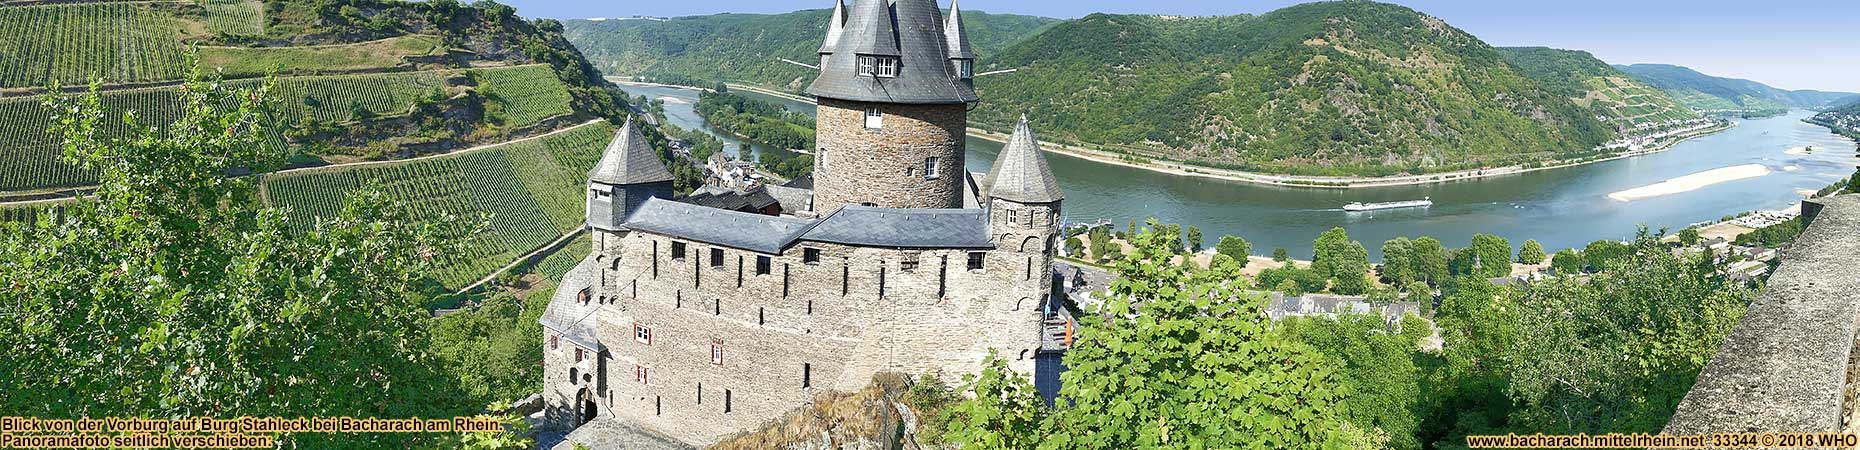 Castle Stahleck above Bacharach on the Rhine River in Germany.